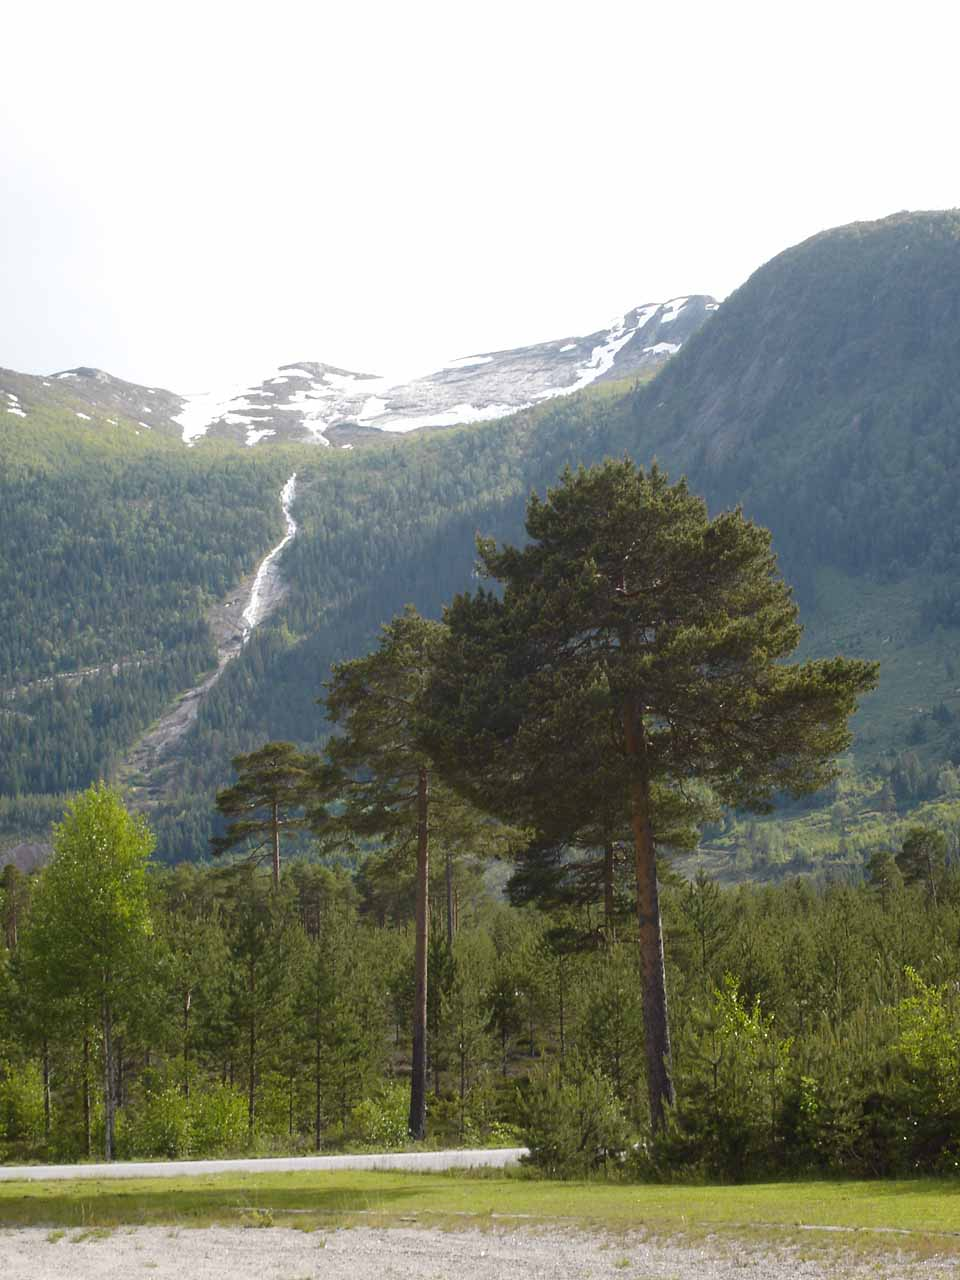 Julie pointed her camera to the opposite side of Setesdal Valley from Kallefossen as she saw this tall waterfall that could very well be Gloppefossen - Sørlandet's highest at a reported 250m